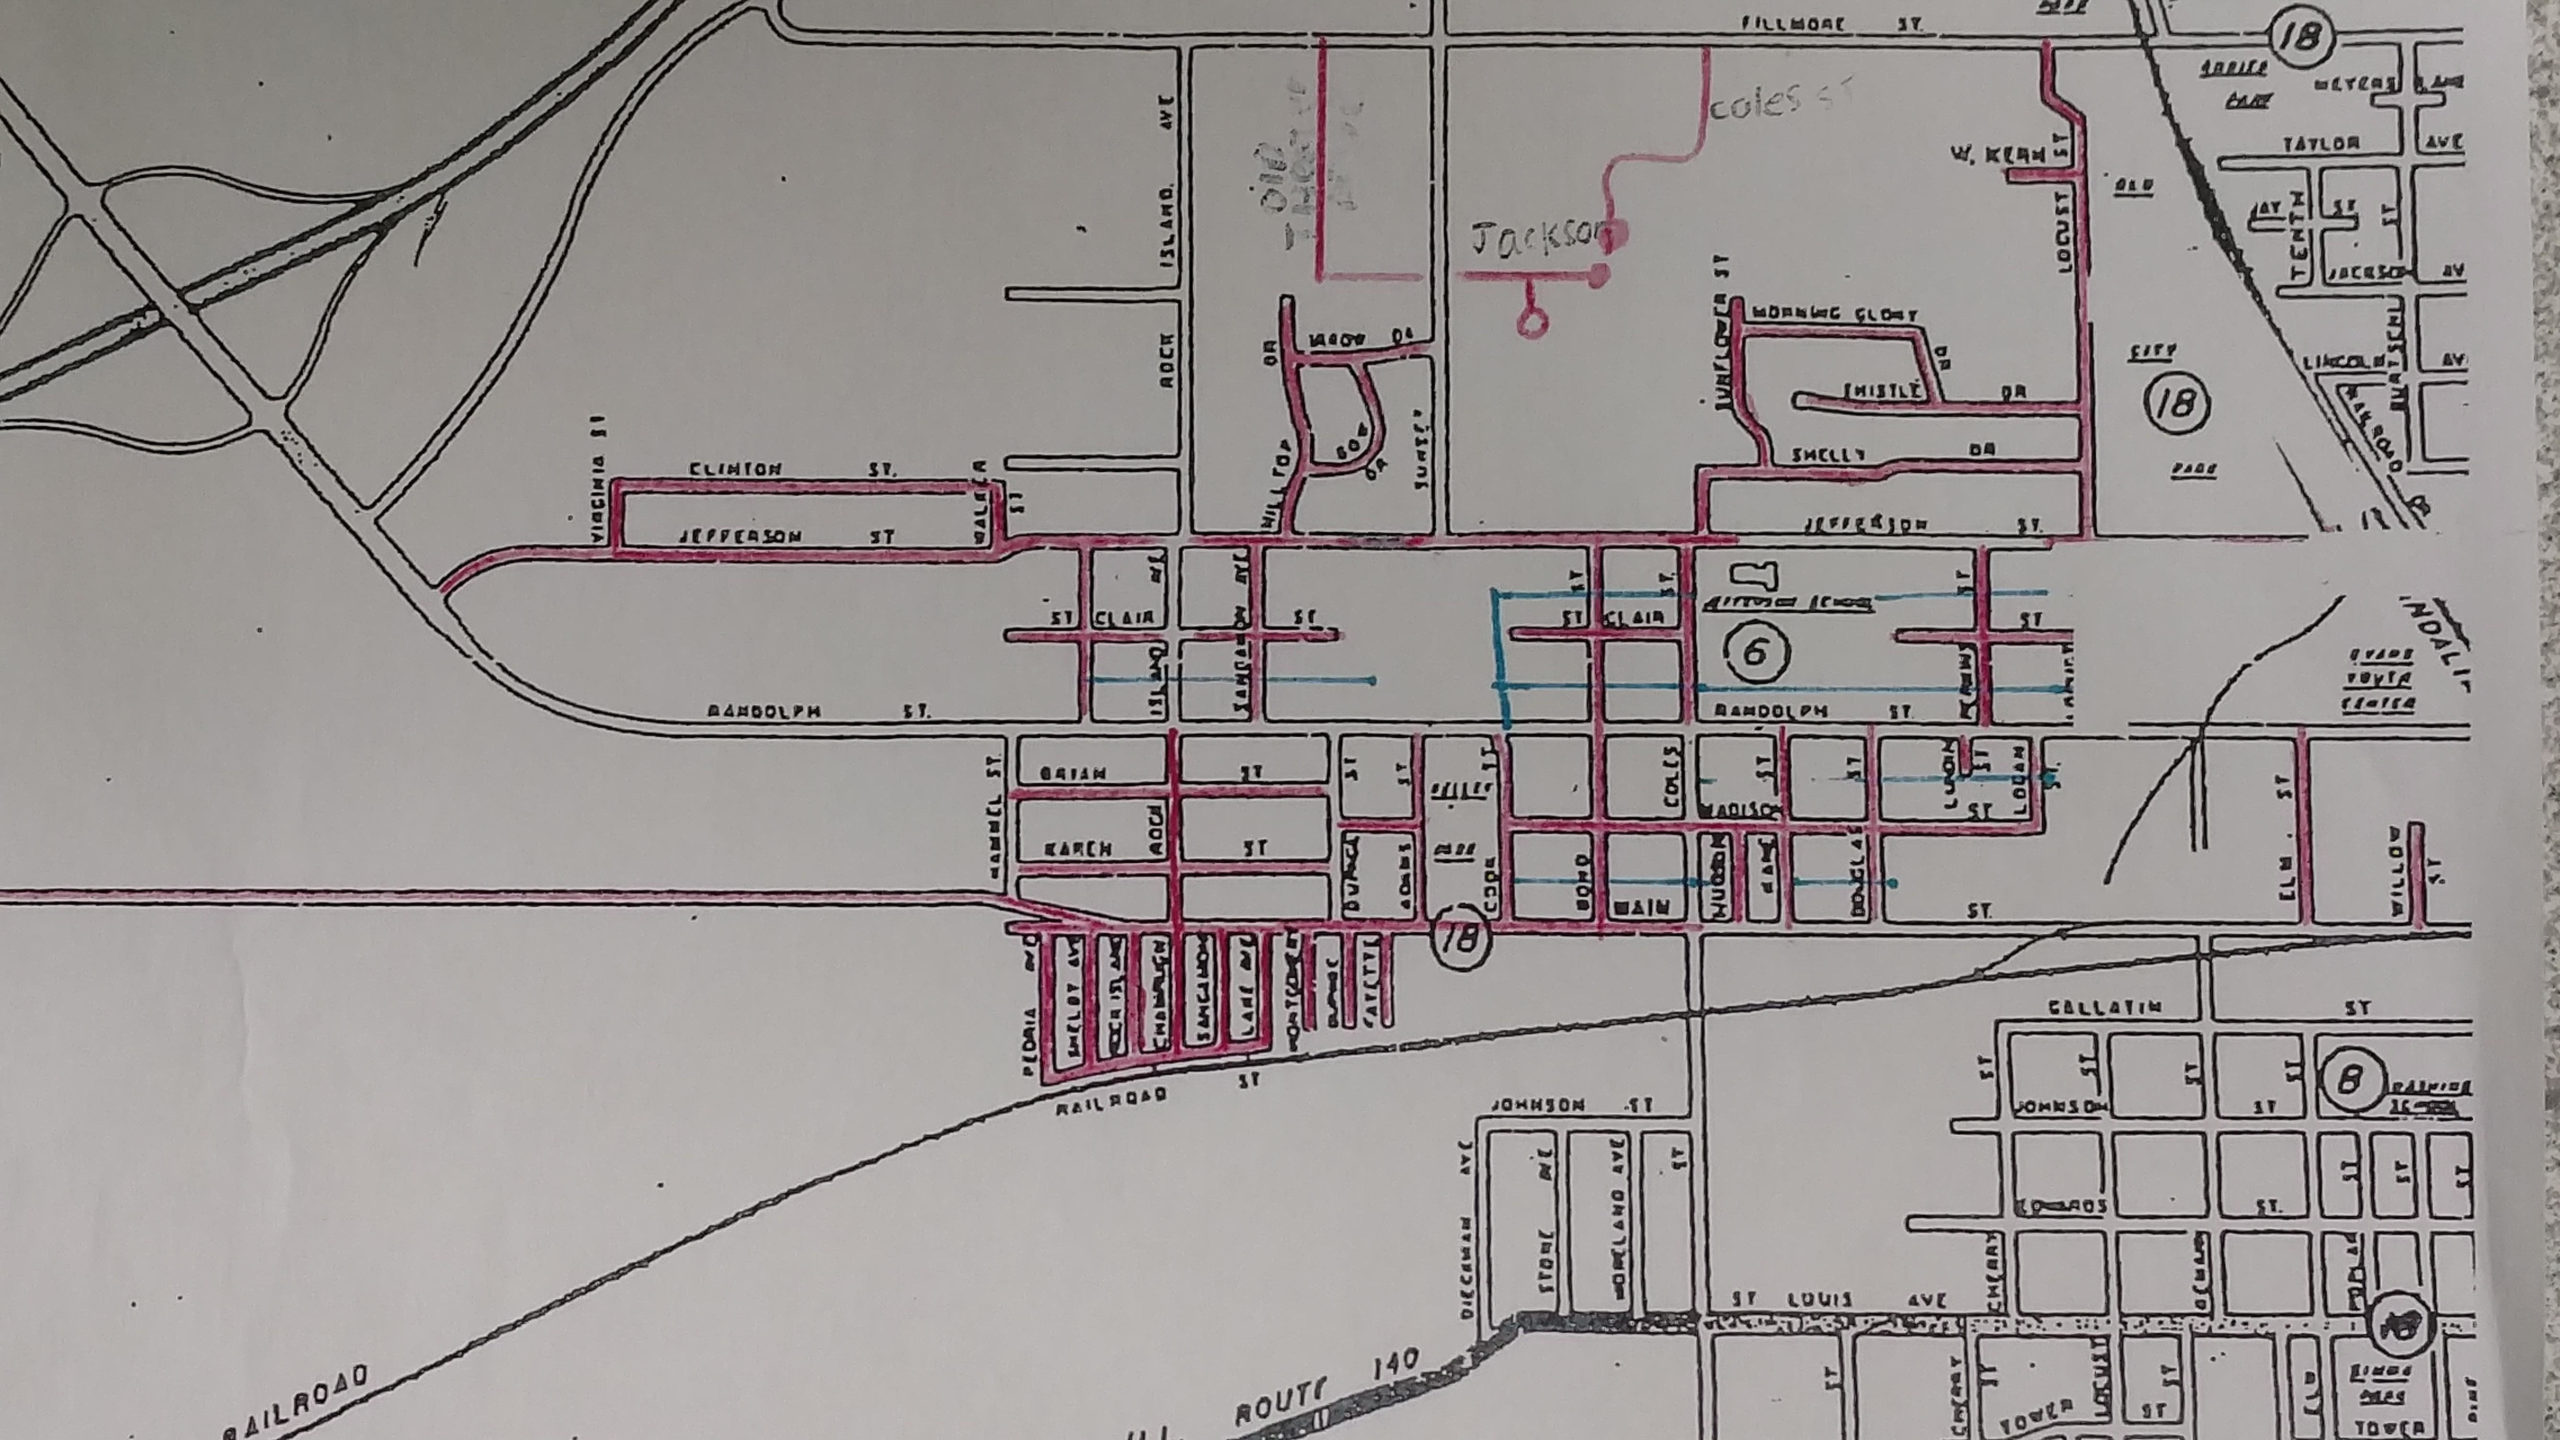 City of Vandalia will begin Oiling Streets On Tuesday, September 5th